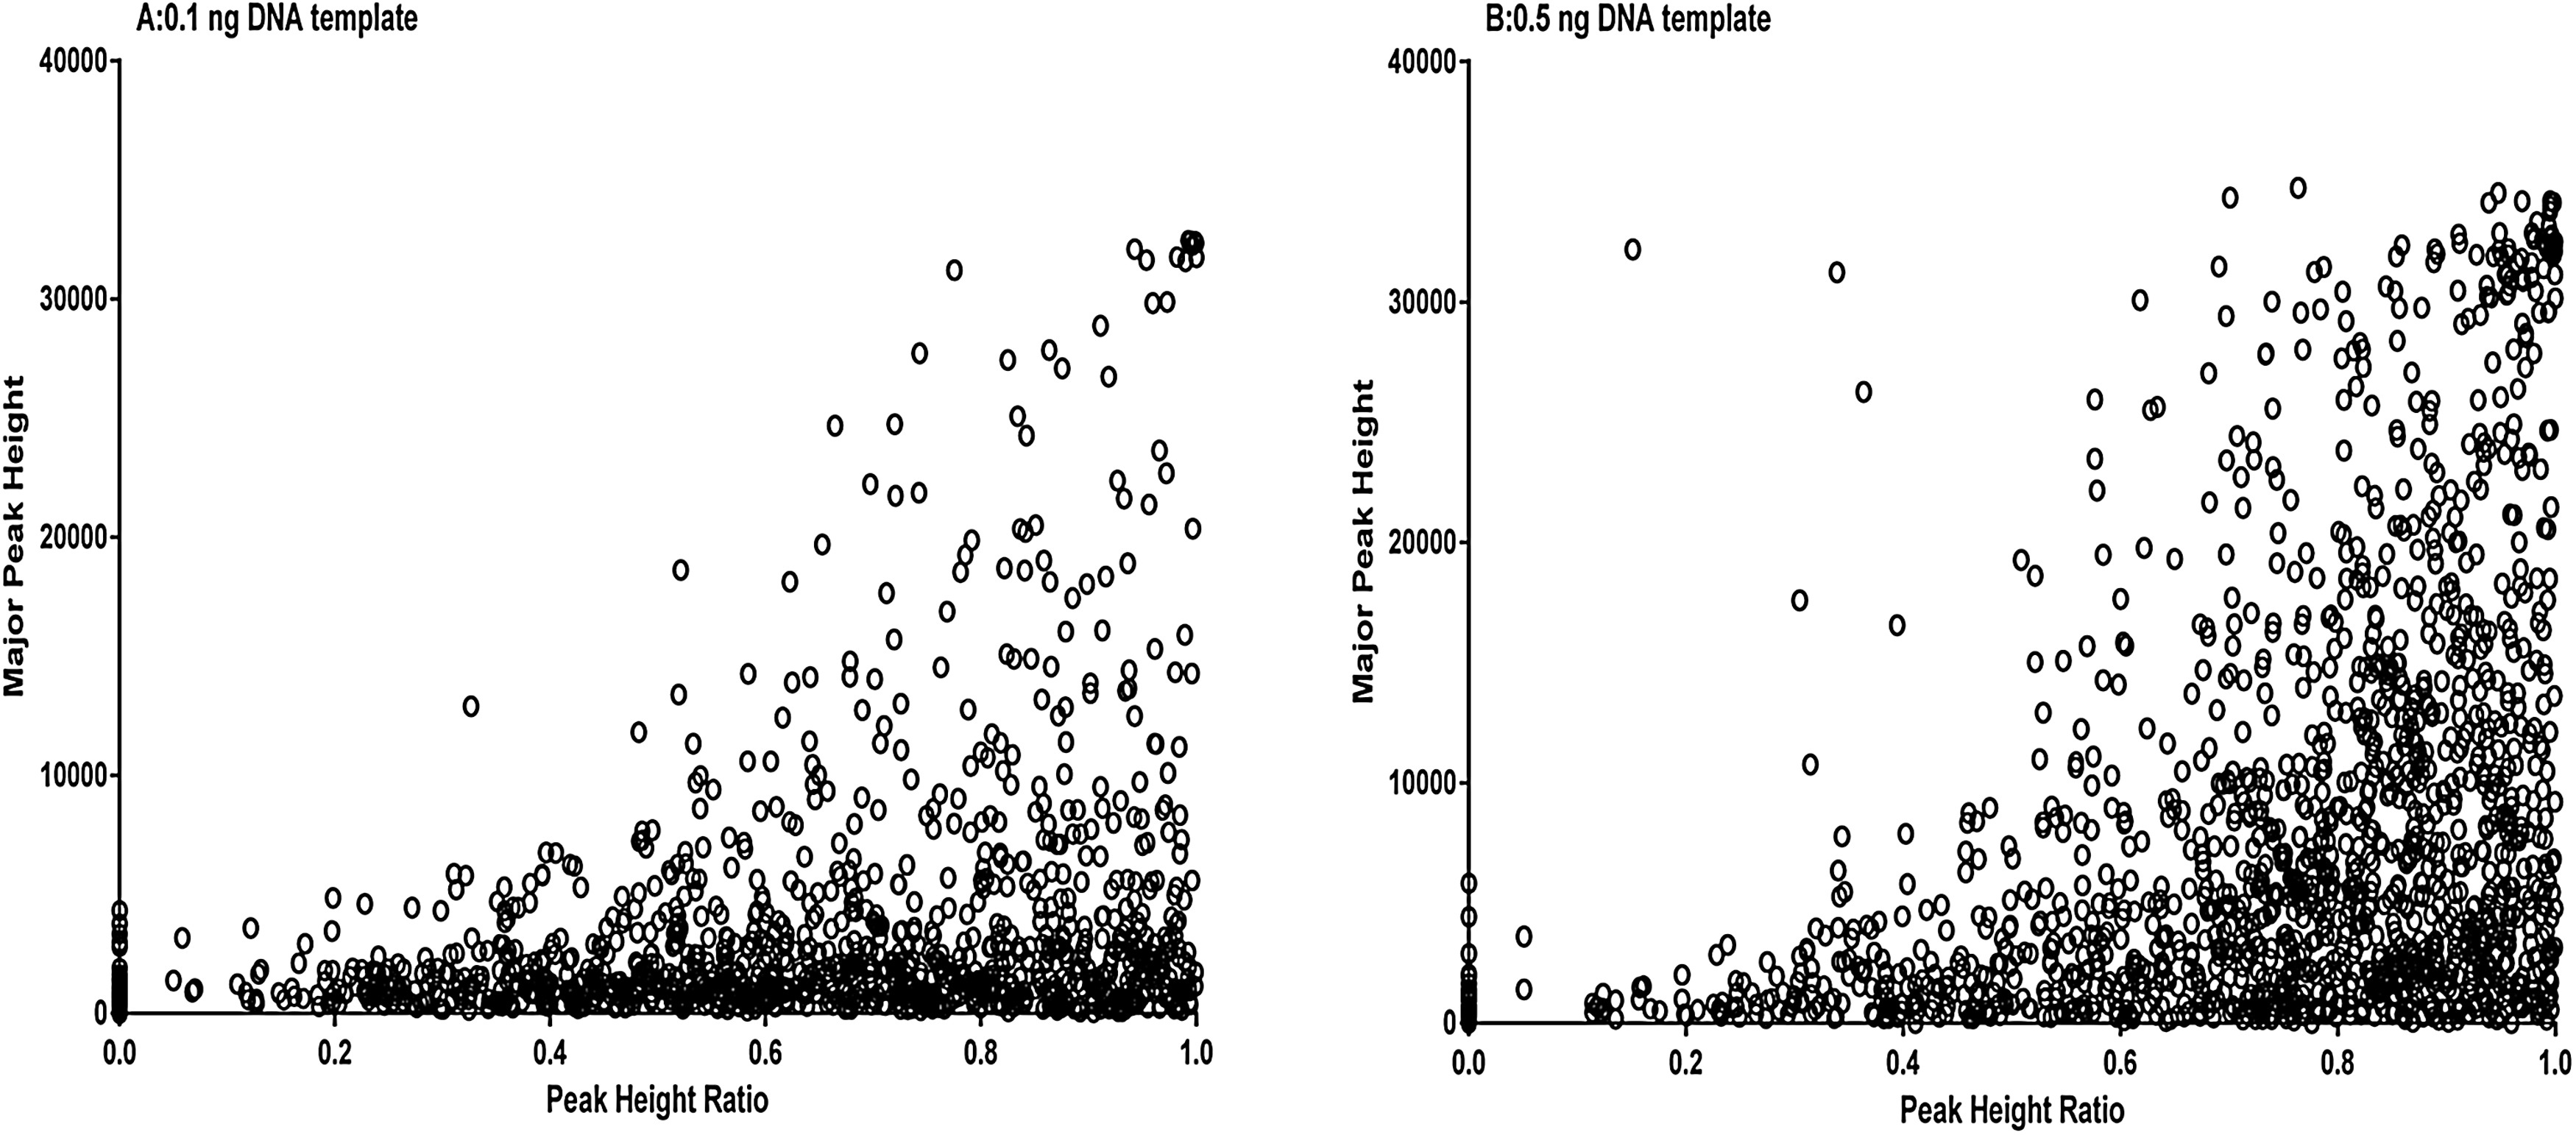 Comparing different post-mortem human samples as DNA